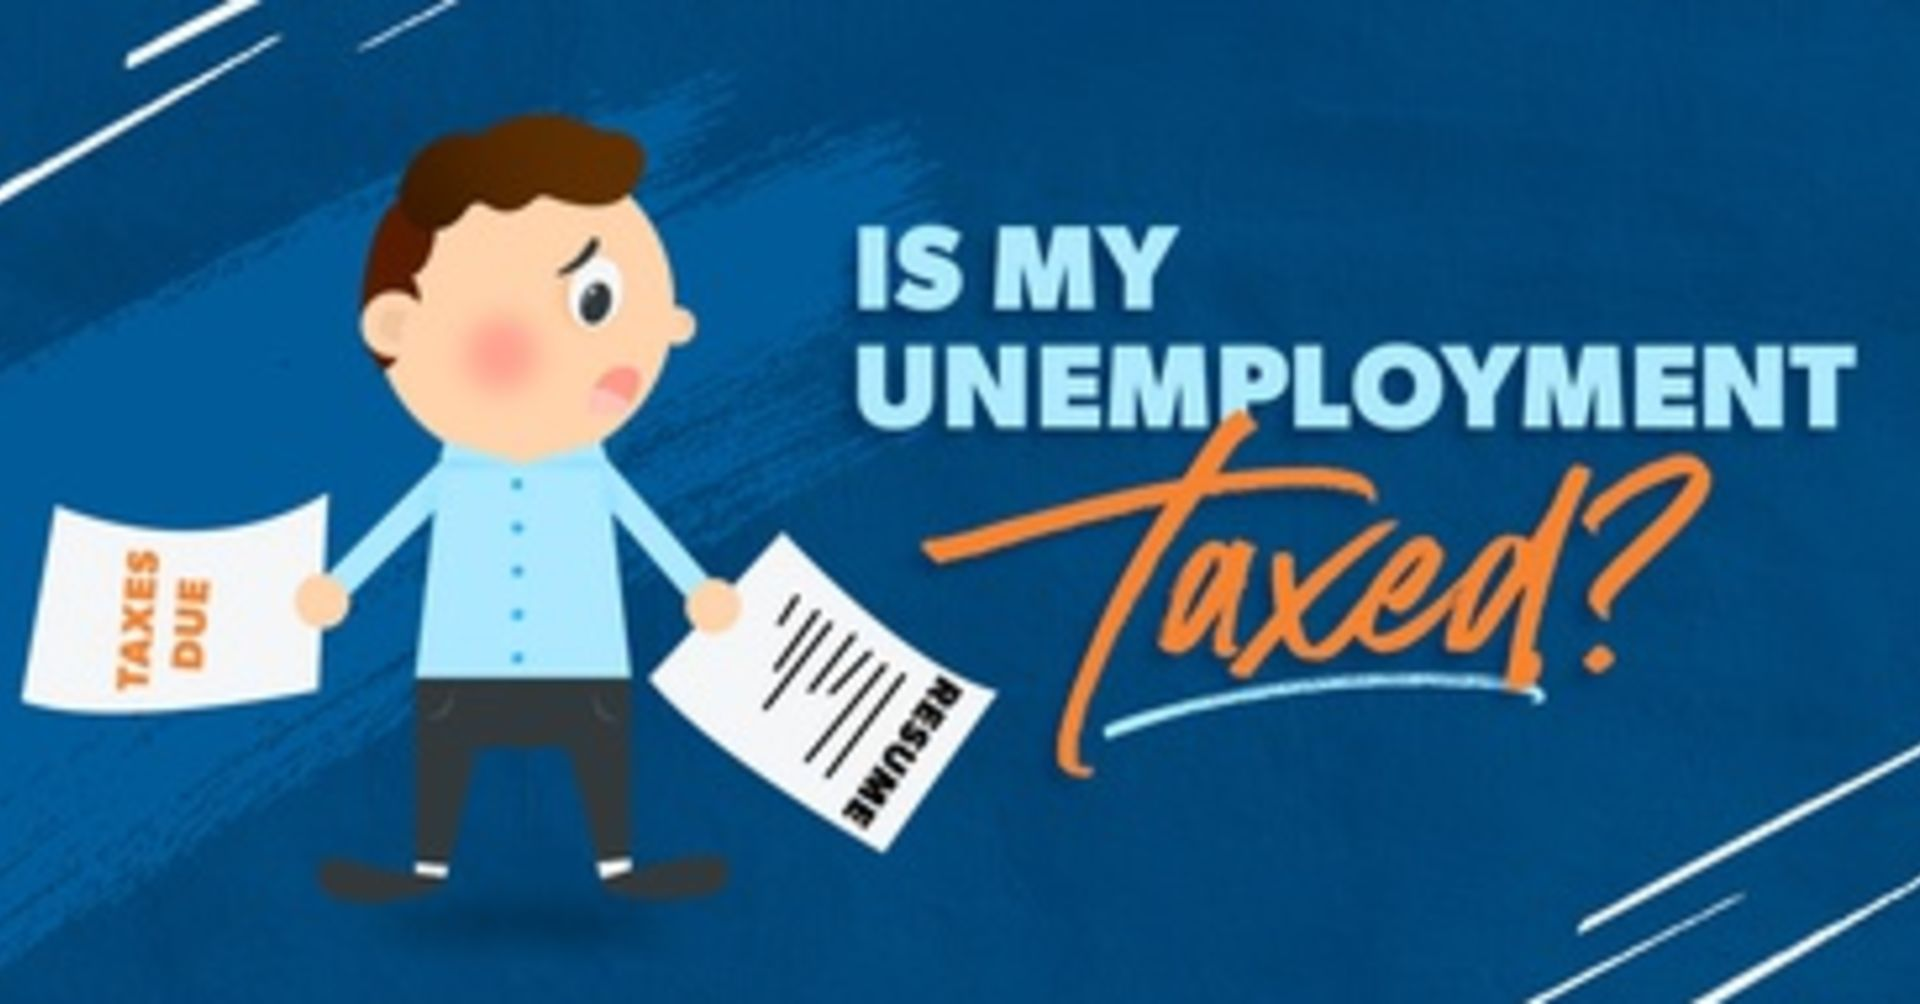 Unemployment benefits and taxes- Dave Ramsey